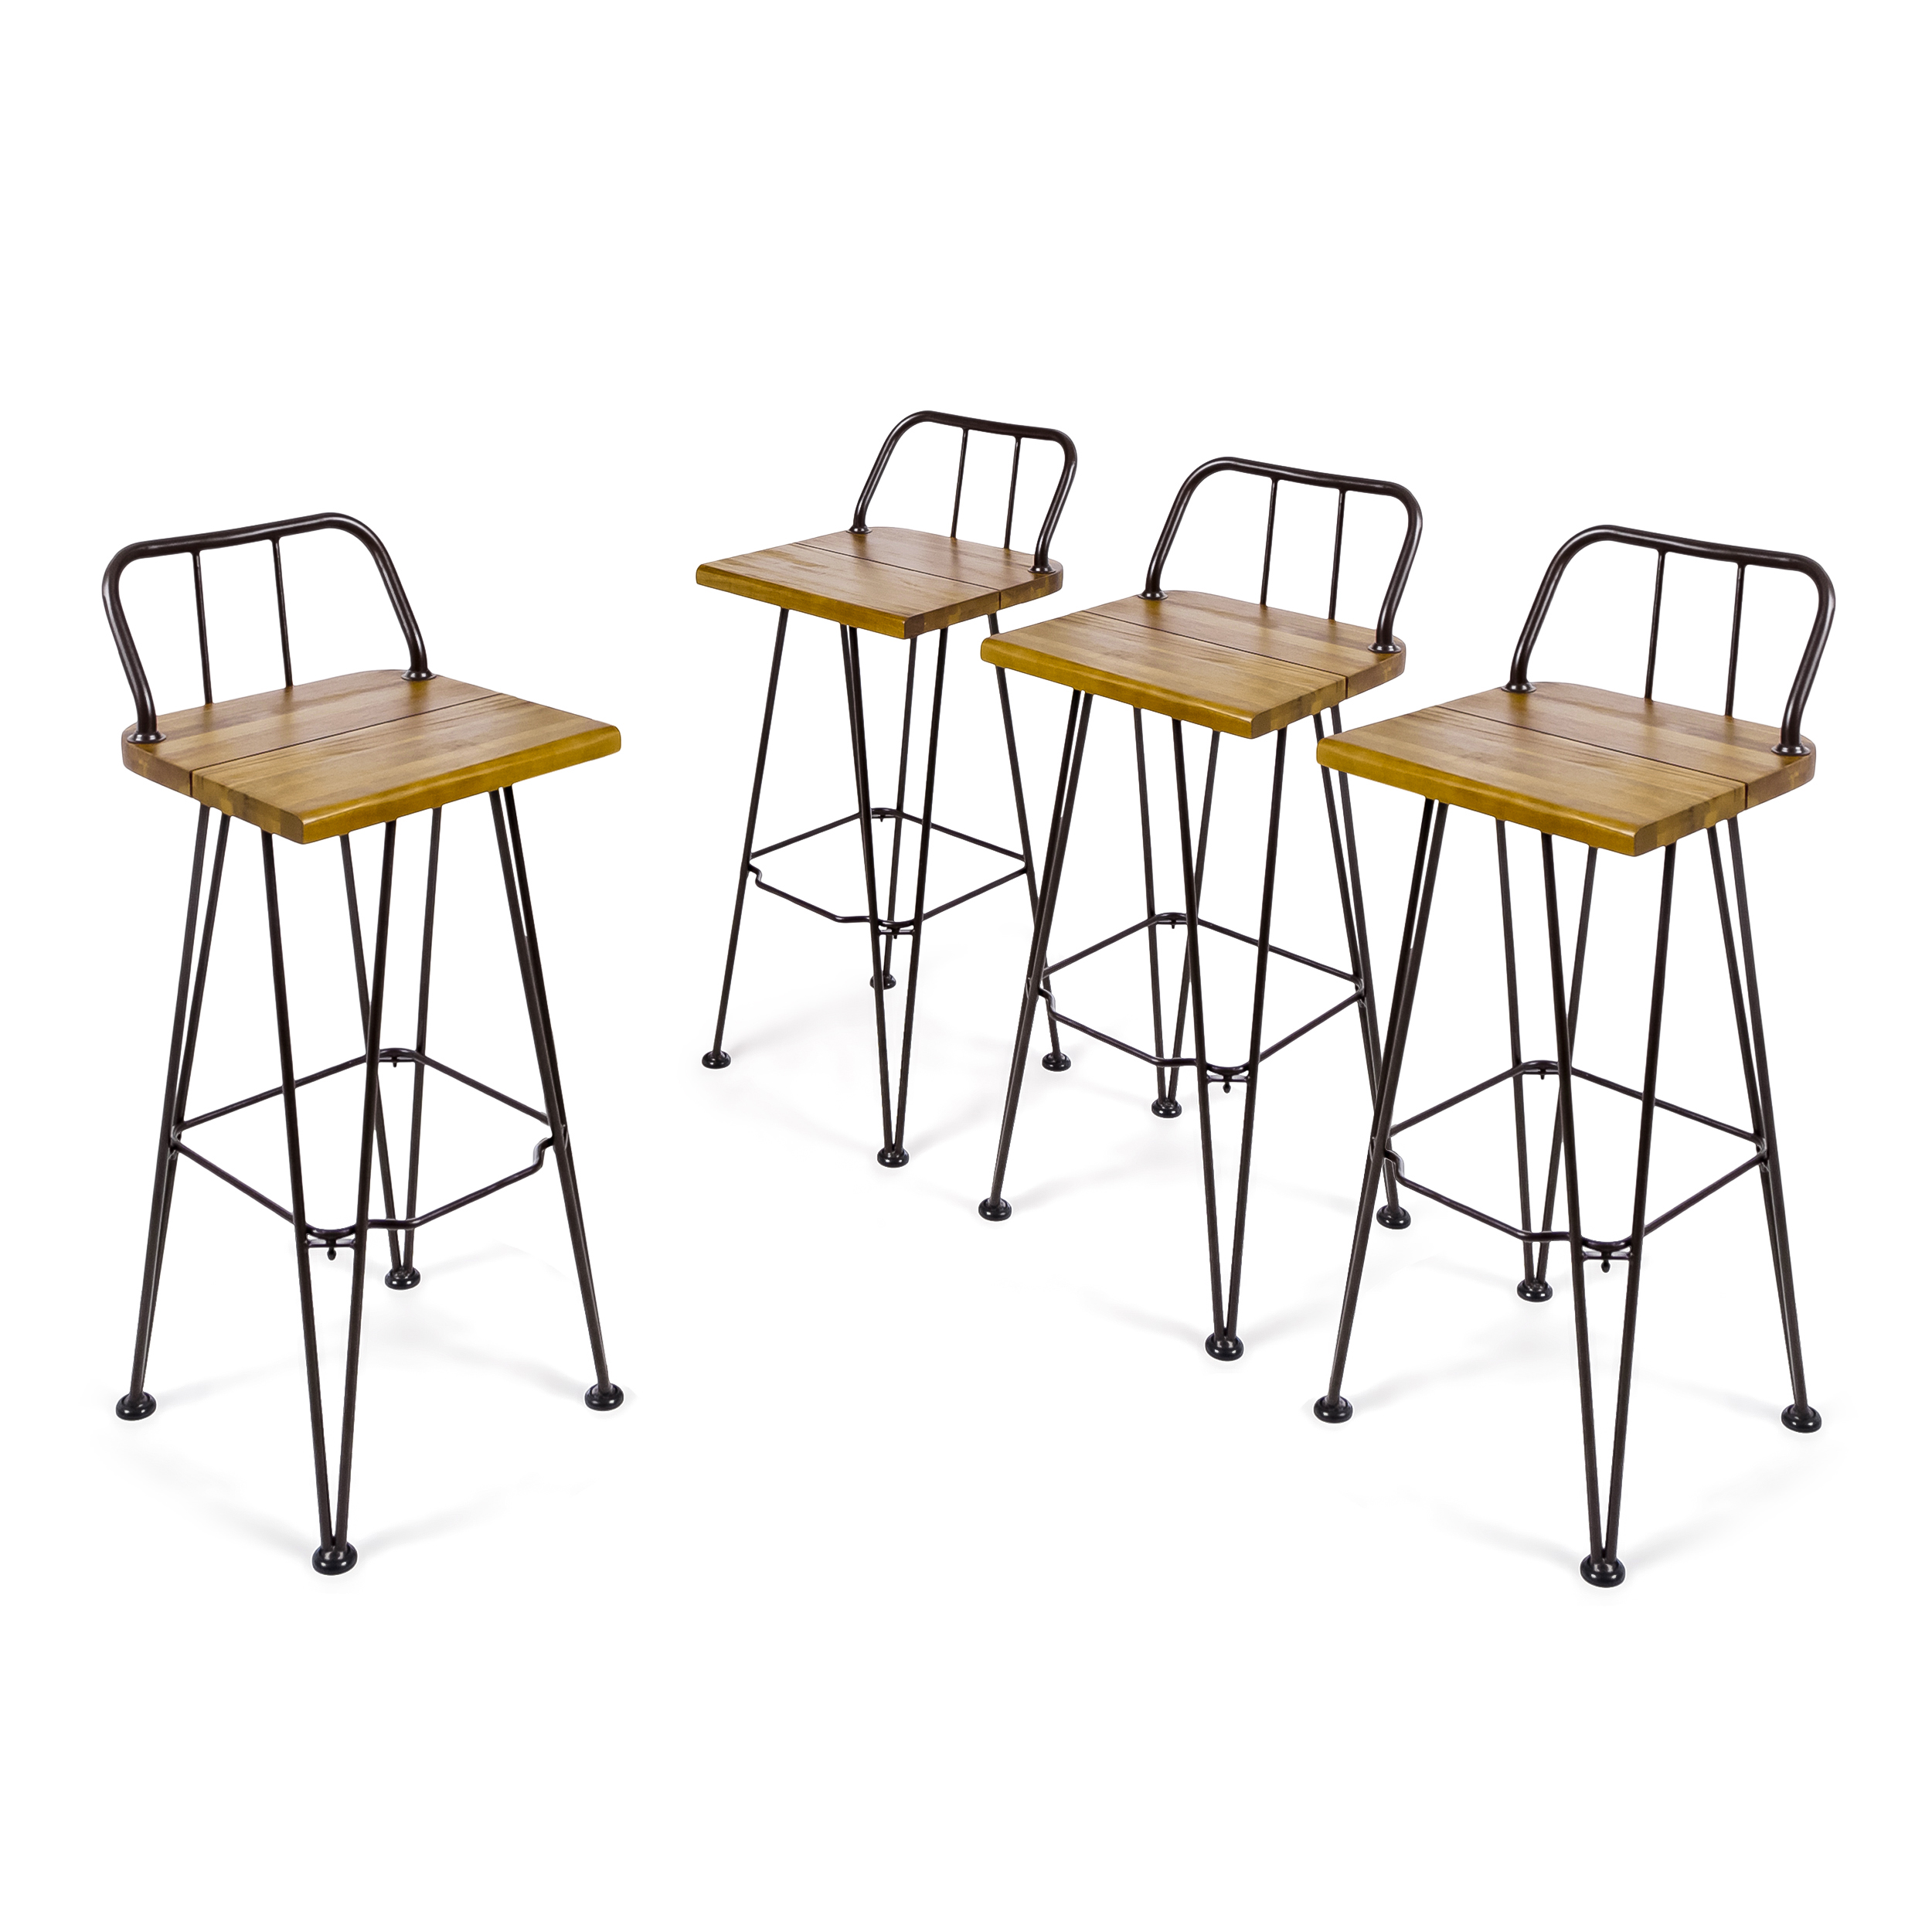 Leonardo Outdoor Industrial Acacia Wood Barstools with Iron Frame, Set of 4, Teak and Rustic Metal